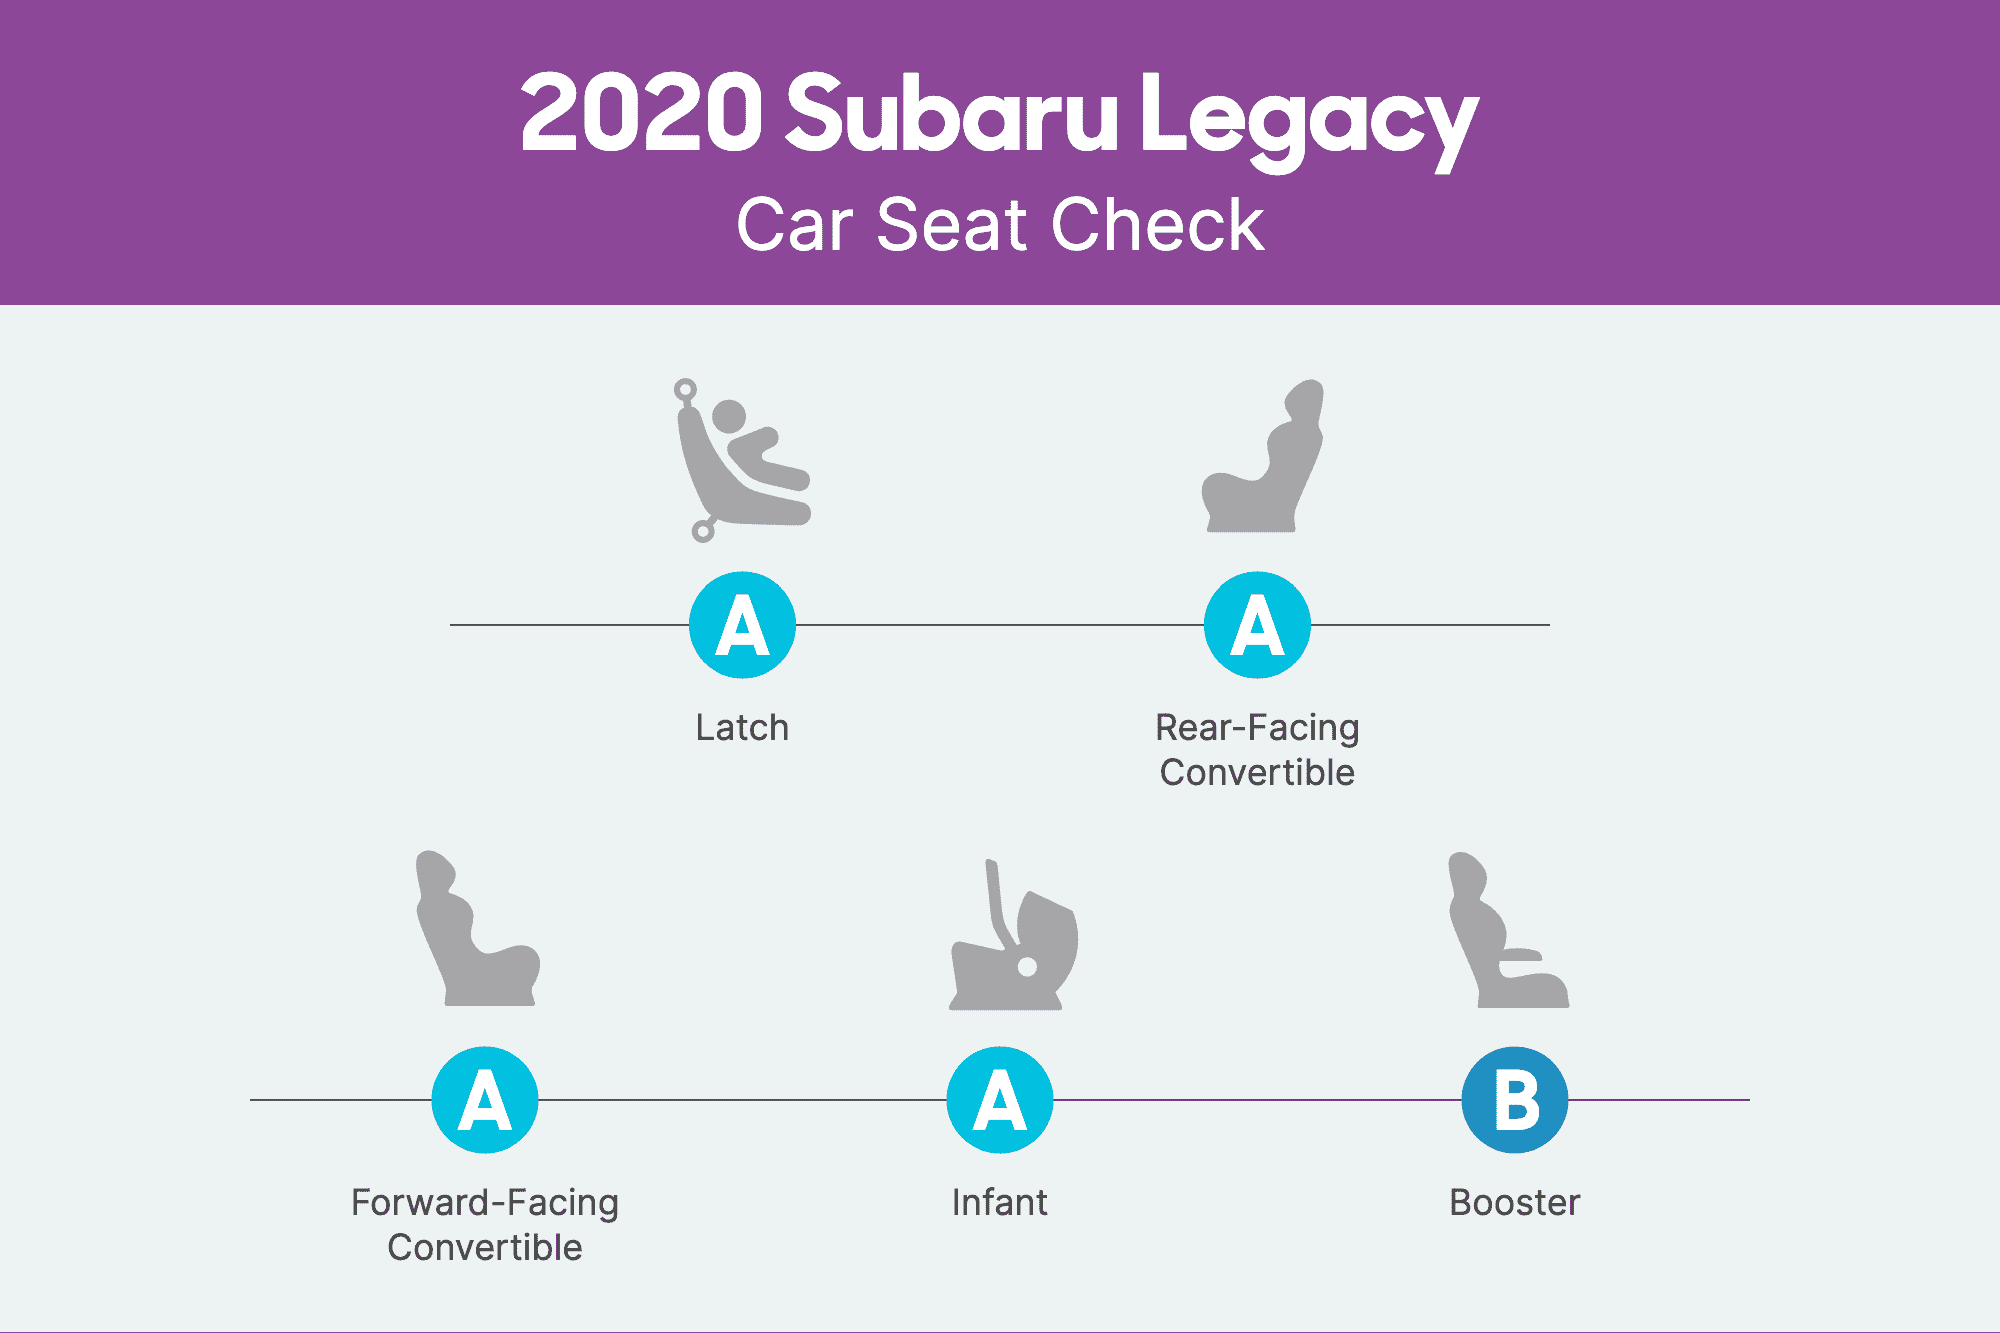 How Do Car Seats Fit in a 2020 Subaru Legacy?